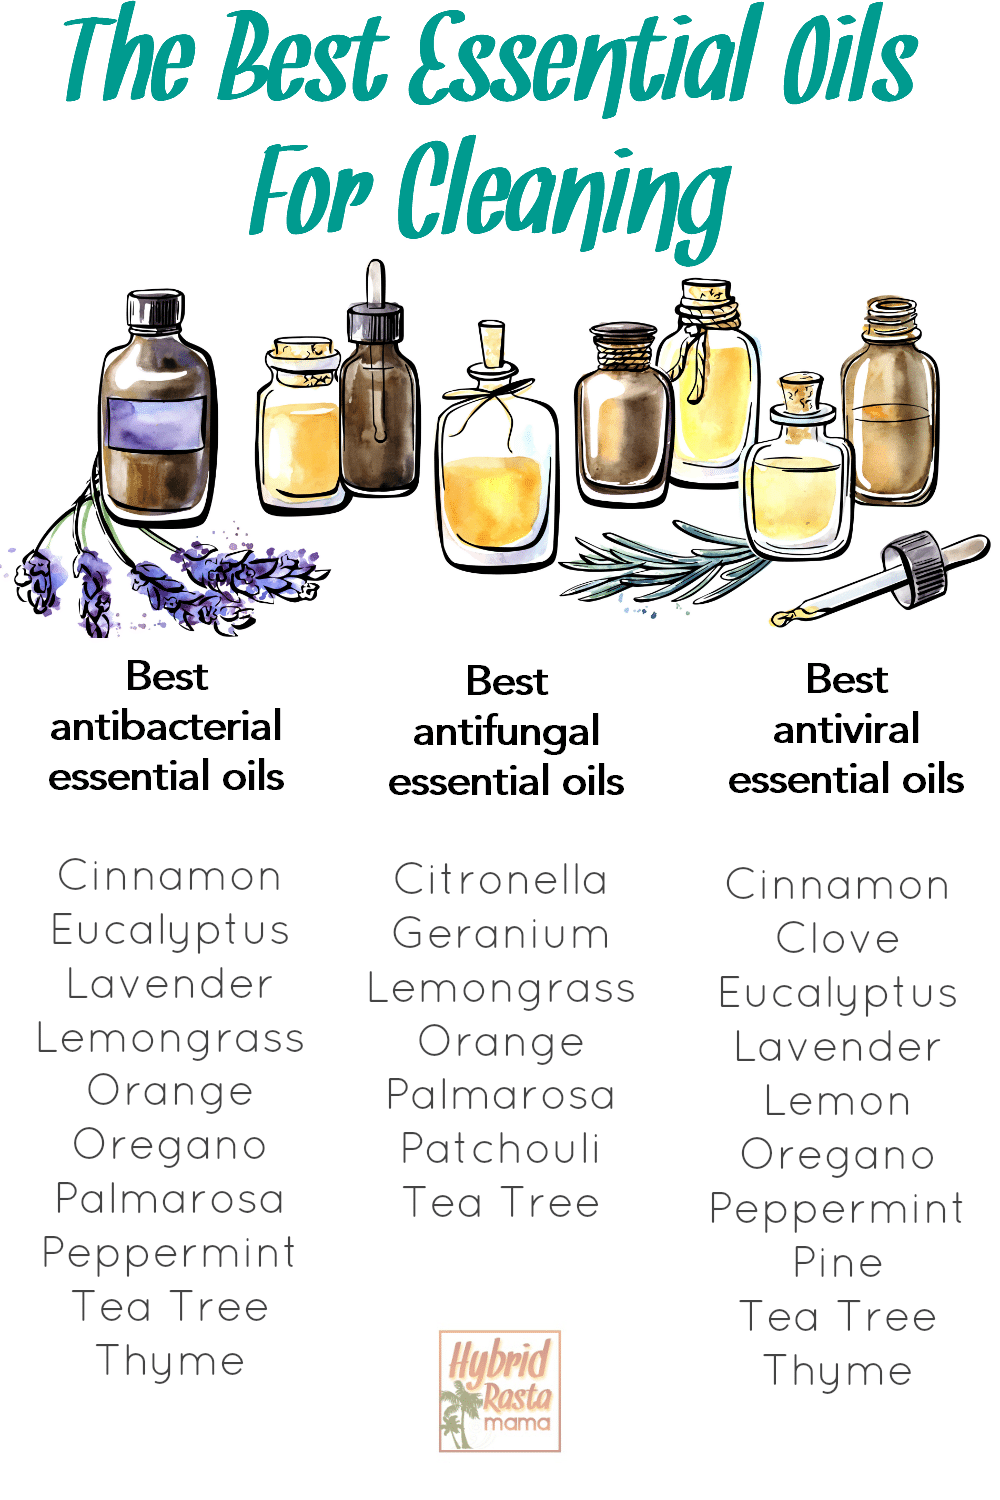 A chart with the best essential oils for cleaning broken down by those that are antimicrobial, antifingal, and antiviral